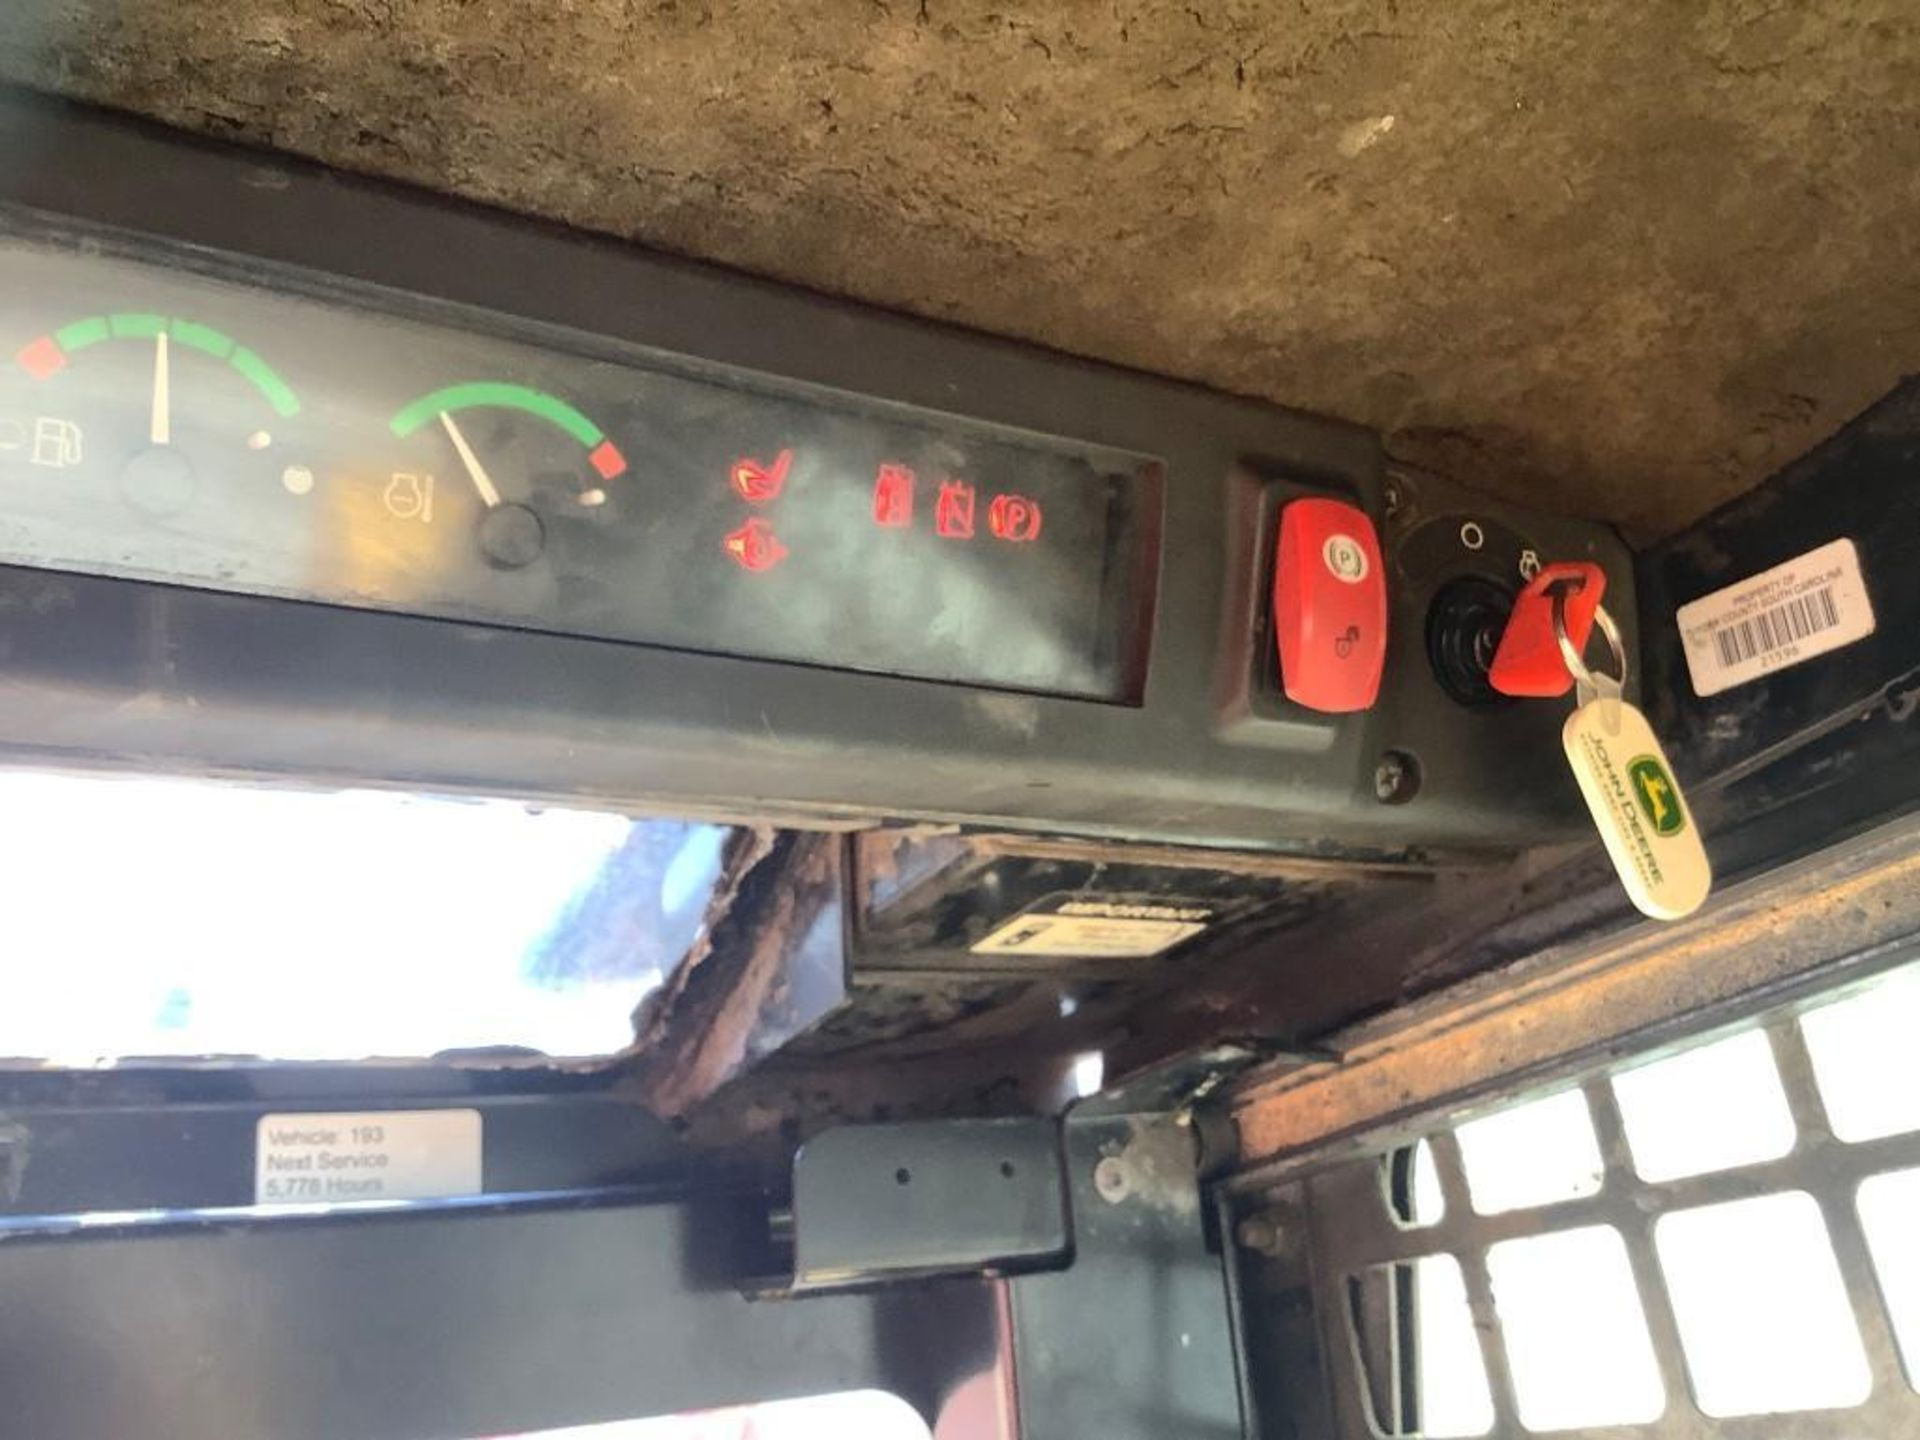 JOHN DEERE SKIDSTEER MODEL 315, DIESEL, GRAPPLE ATTACHMENT, SOLID TIRES, AUX HYDRAULIC, ENCLOSED CAB - Image 13 of 15